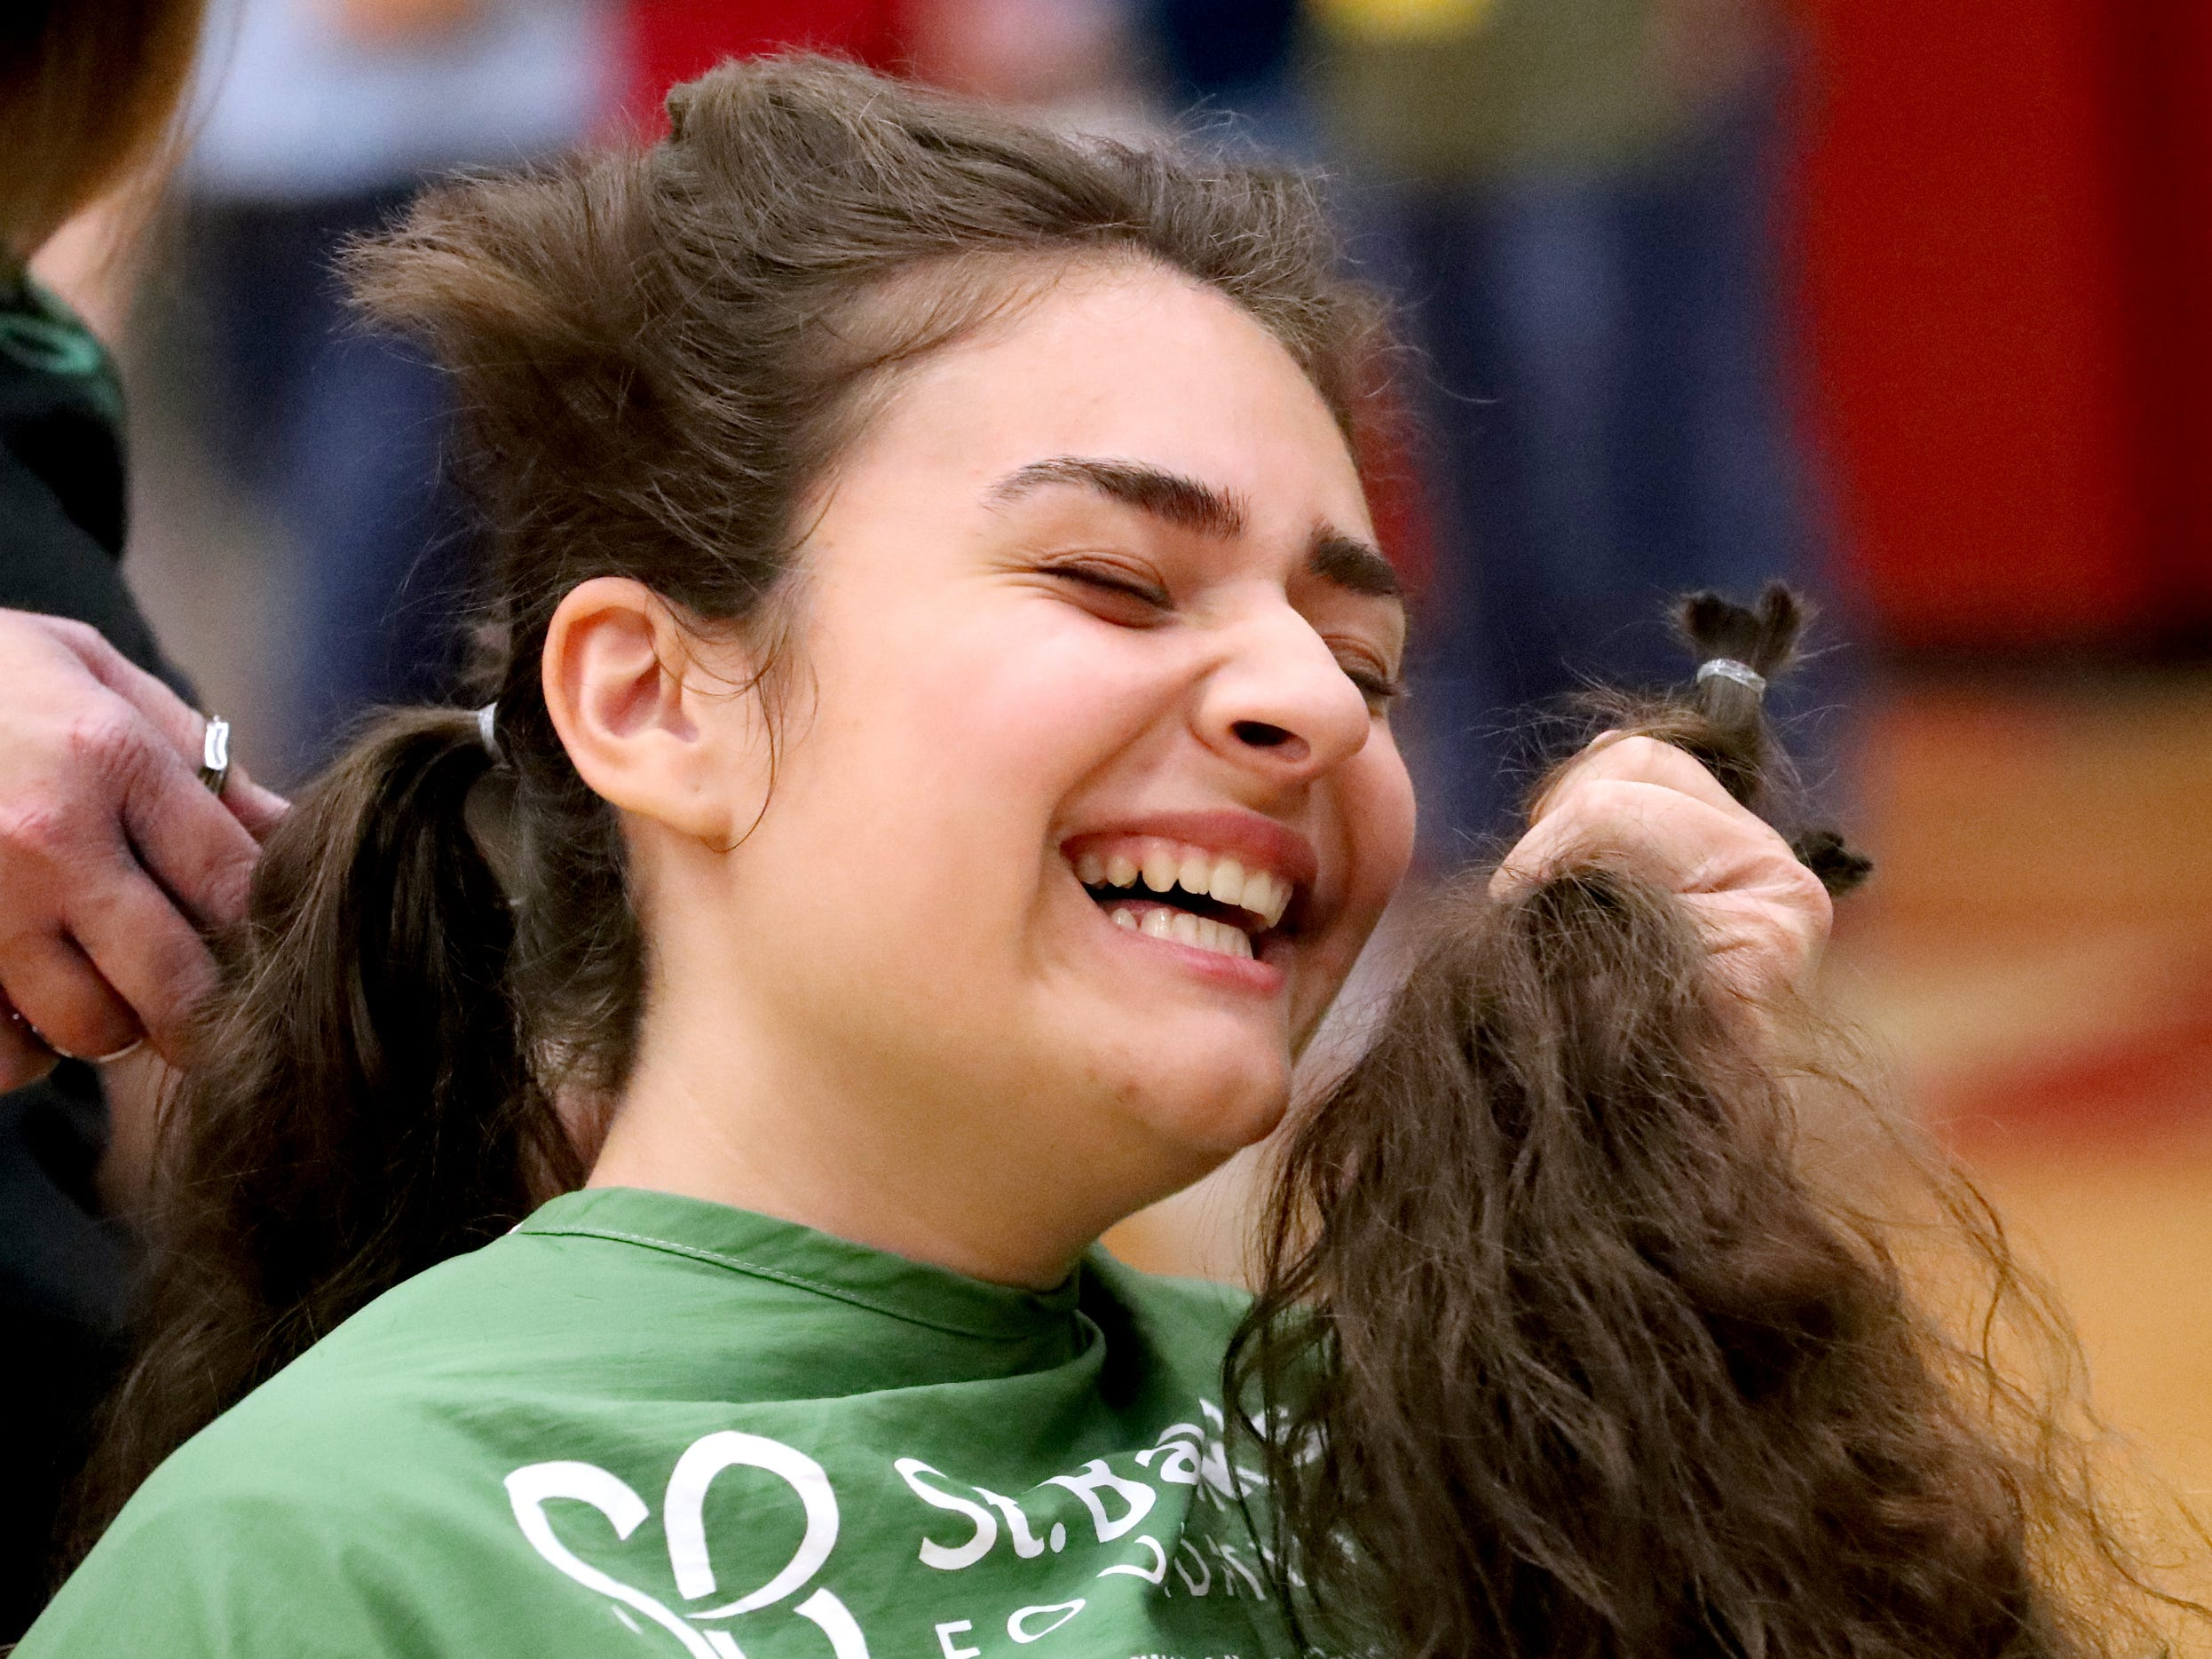 Rverdale junior Steph Nikel reacts as she gets her hair cut before it shaved during Riverdale High School's sixth annual Brave the Shave fundraiser to benefit St. Baldrick's Foundation on Thursday, March 21, 2019. The organization raises funds and awareness for childhood cancer.